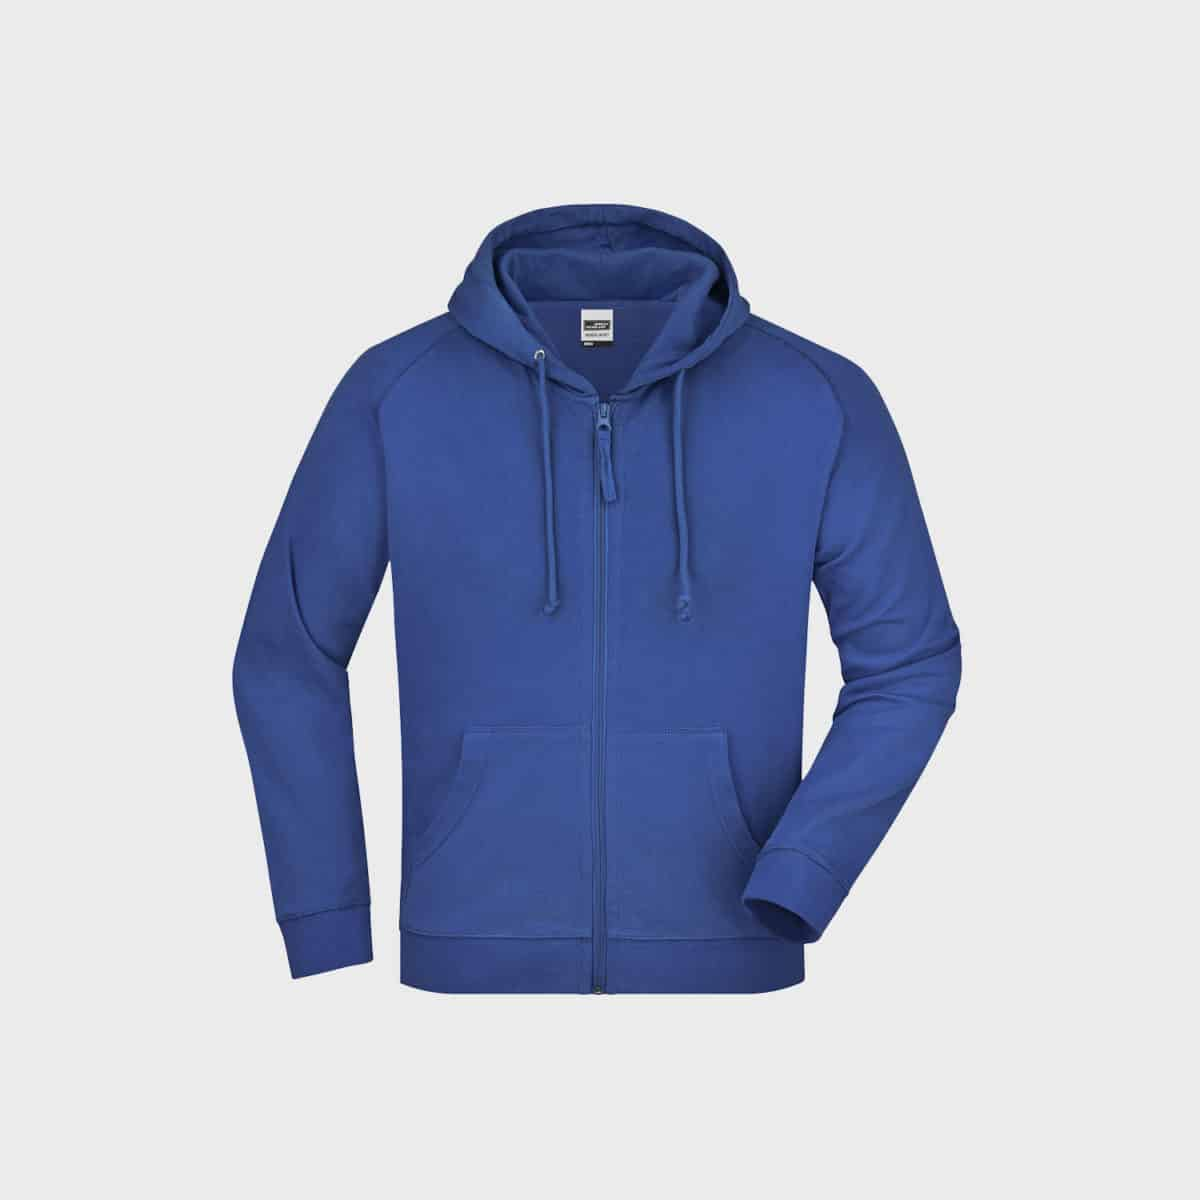 sweatjacke-hoodie-men-royal-kaufen-besticken_stickmanufaktur